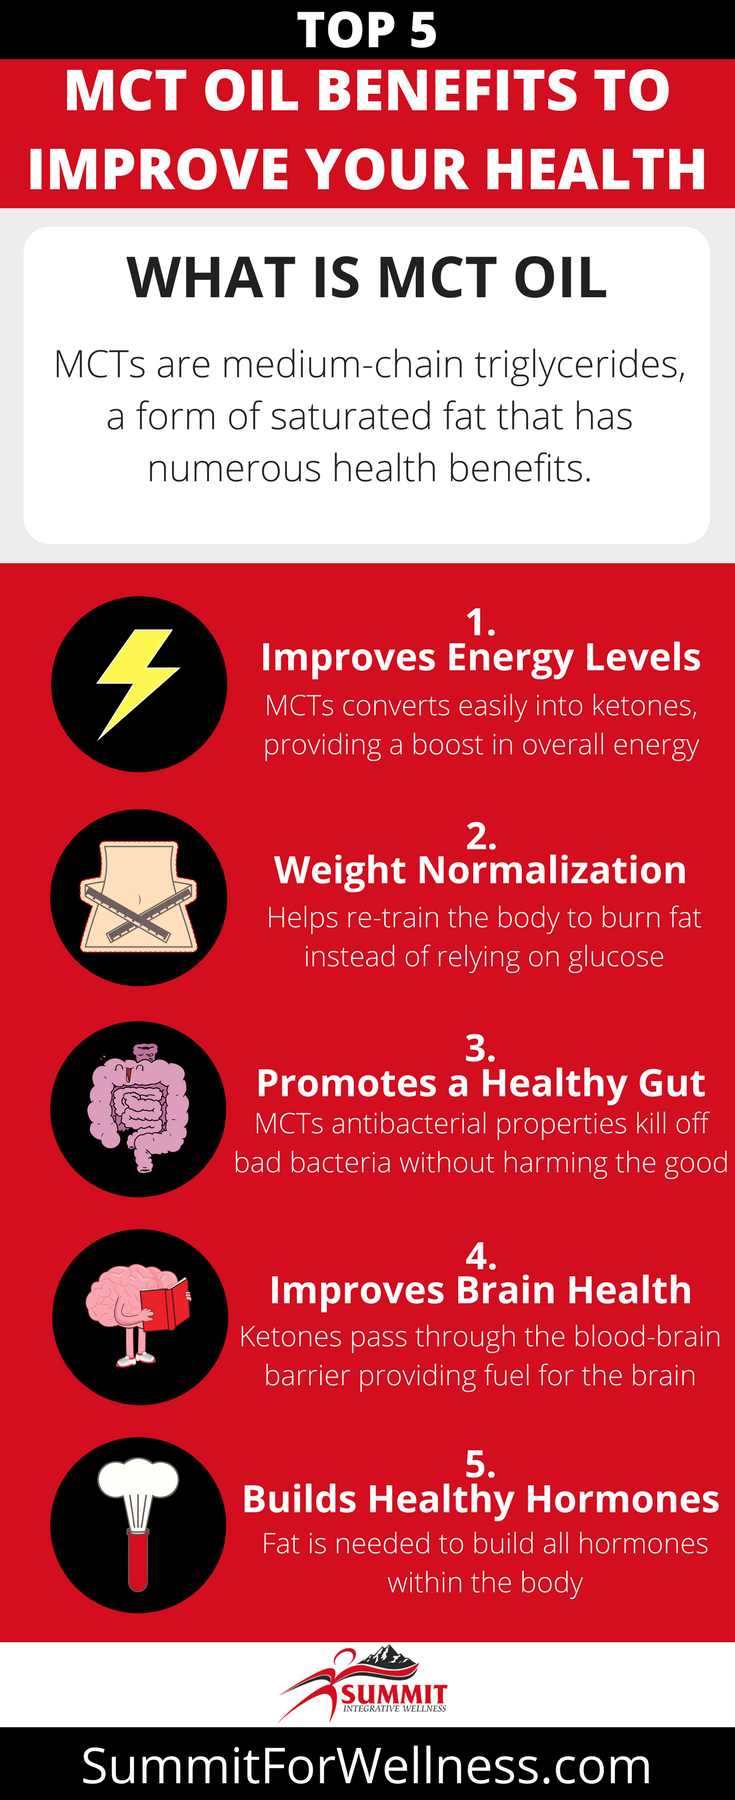 Learn what the Top 5 MCT Oil Benefits are and how to use it.